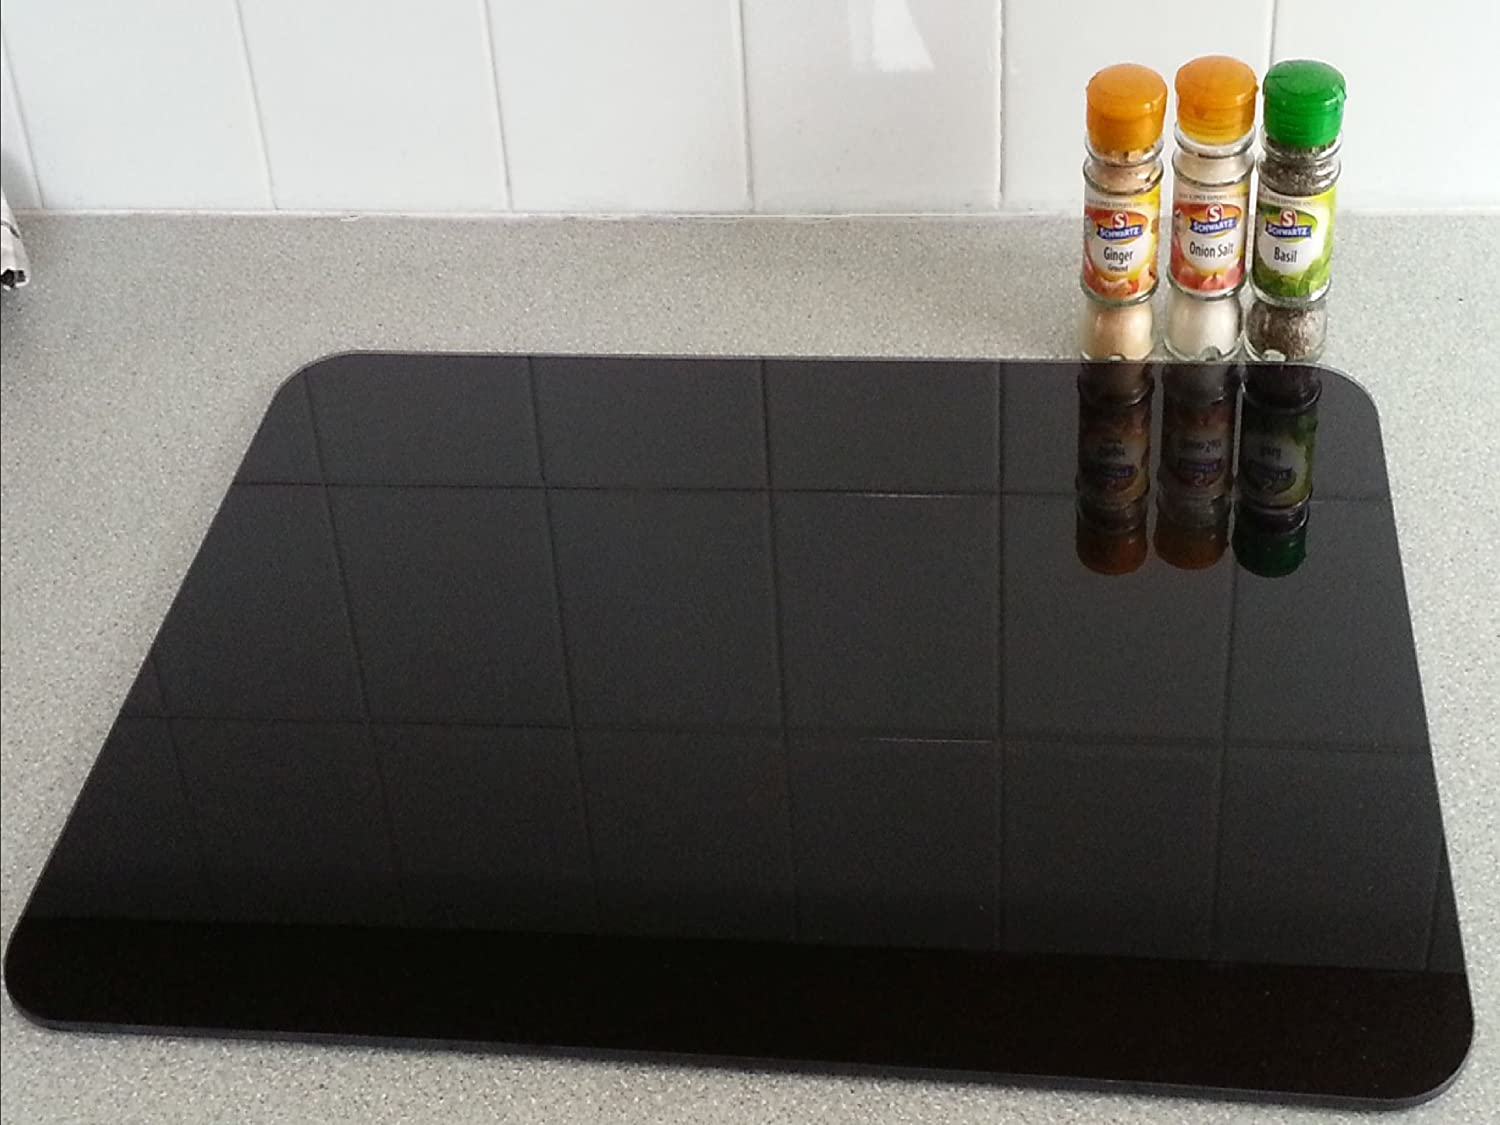 Black Smooth & Flat Float Glass Worktop Saver - 60 x 40cm by Pearl Glass Extra Large